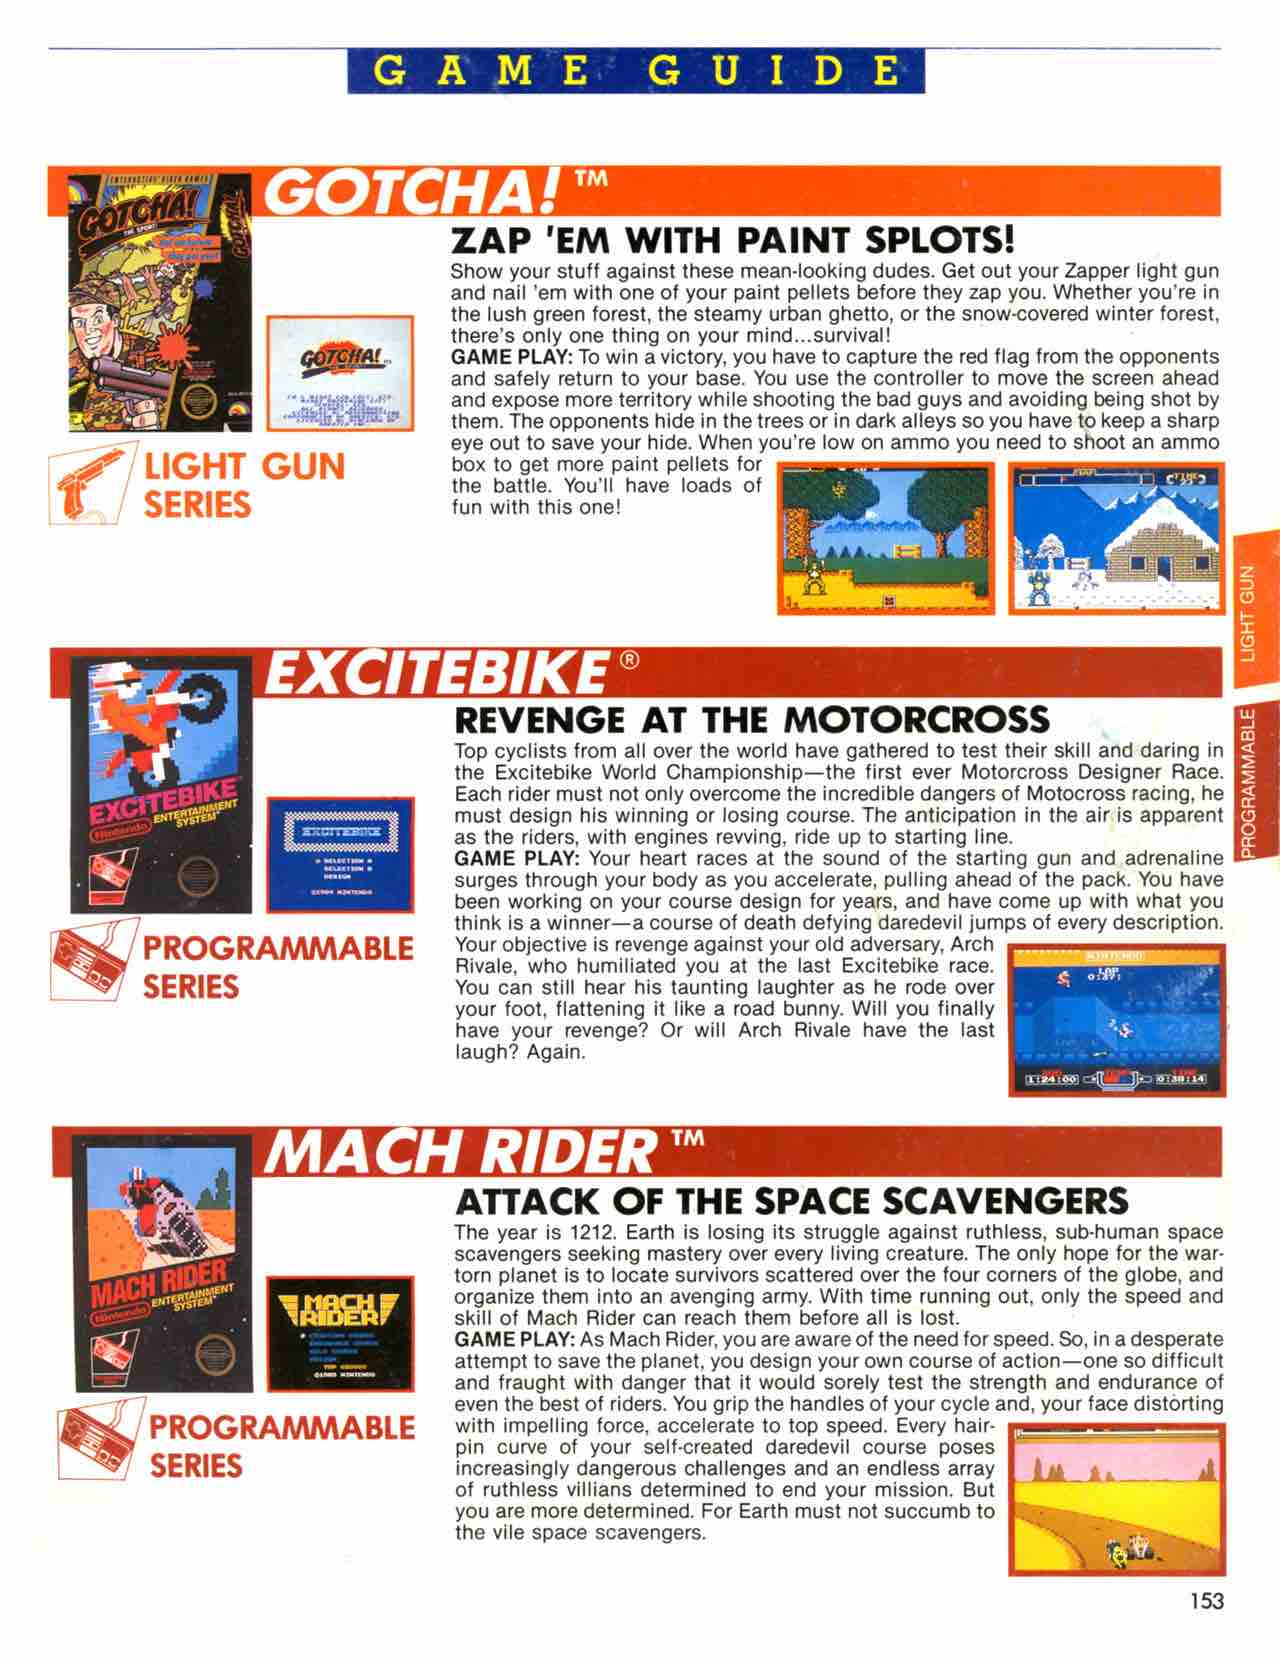 Official Nintendo Player's Guide Pg 153